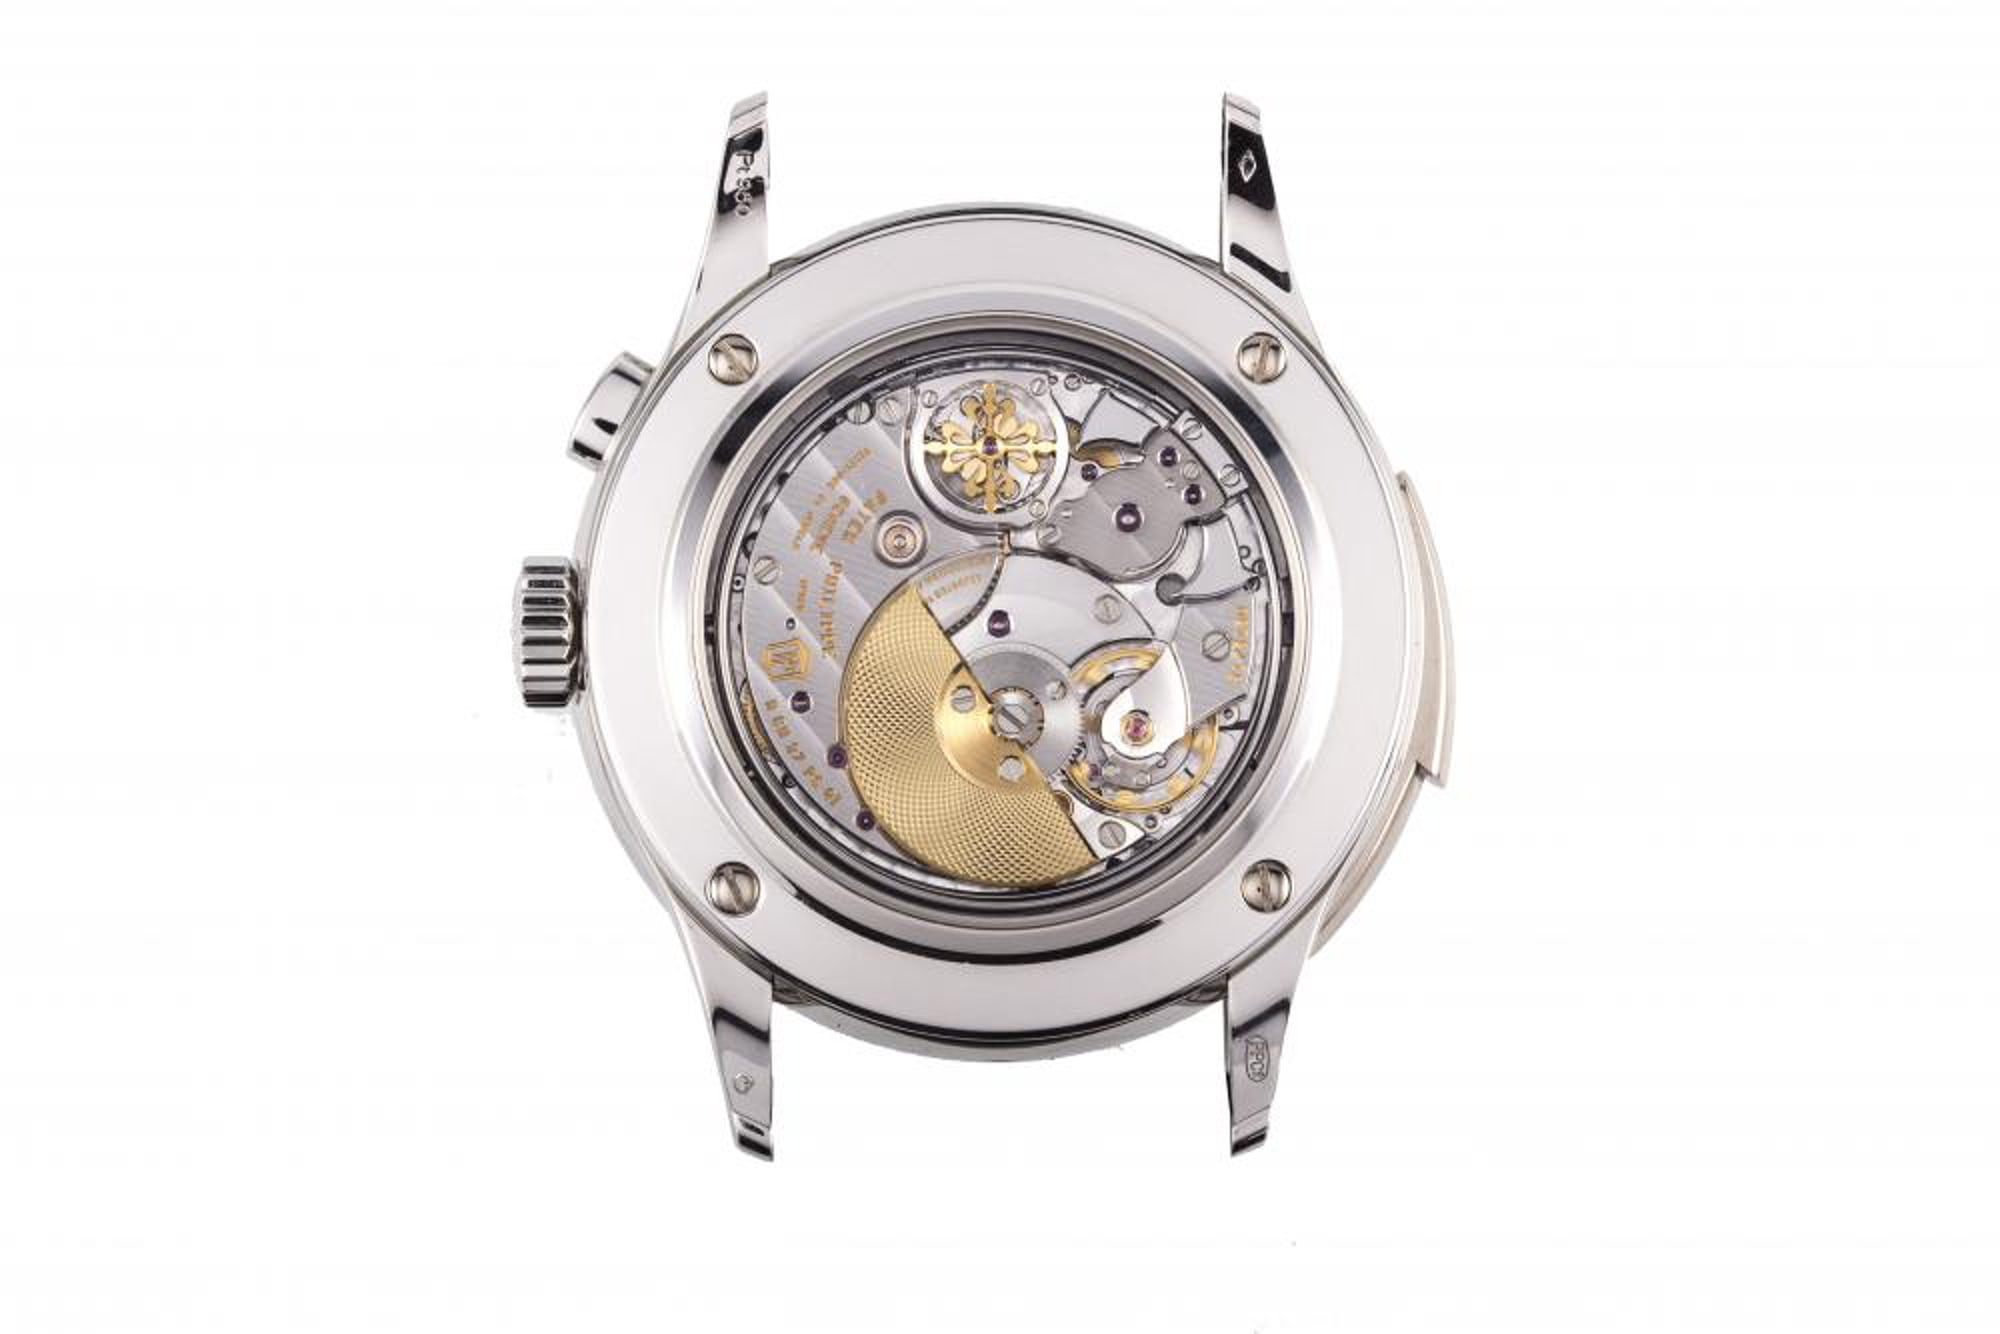 <p>The 5208 is a self-winding, minute repeating wristwatch.</p>